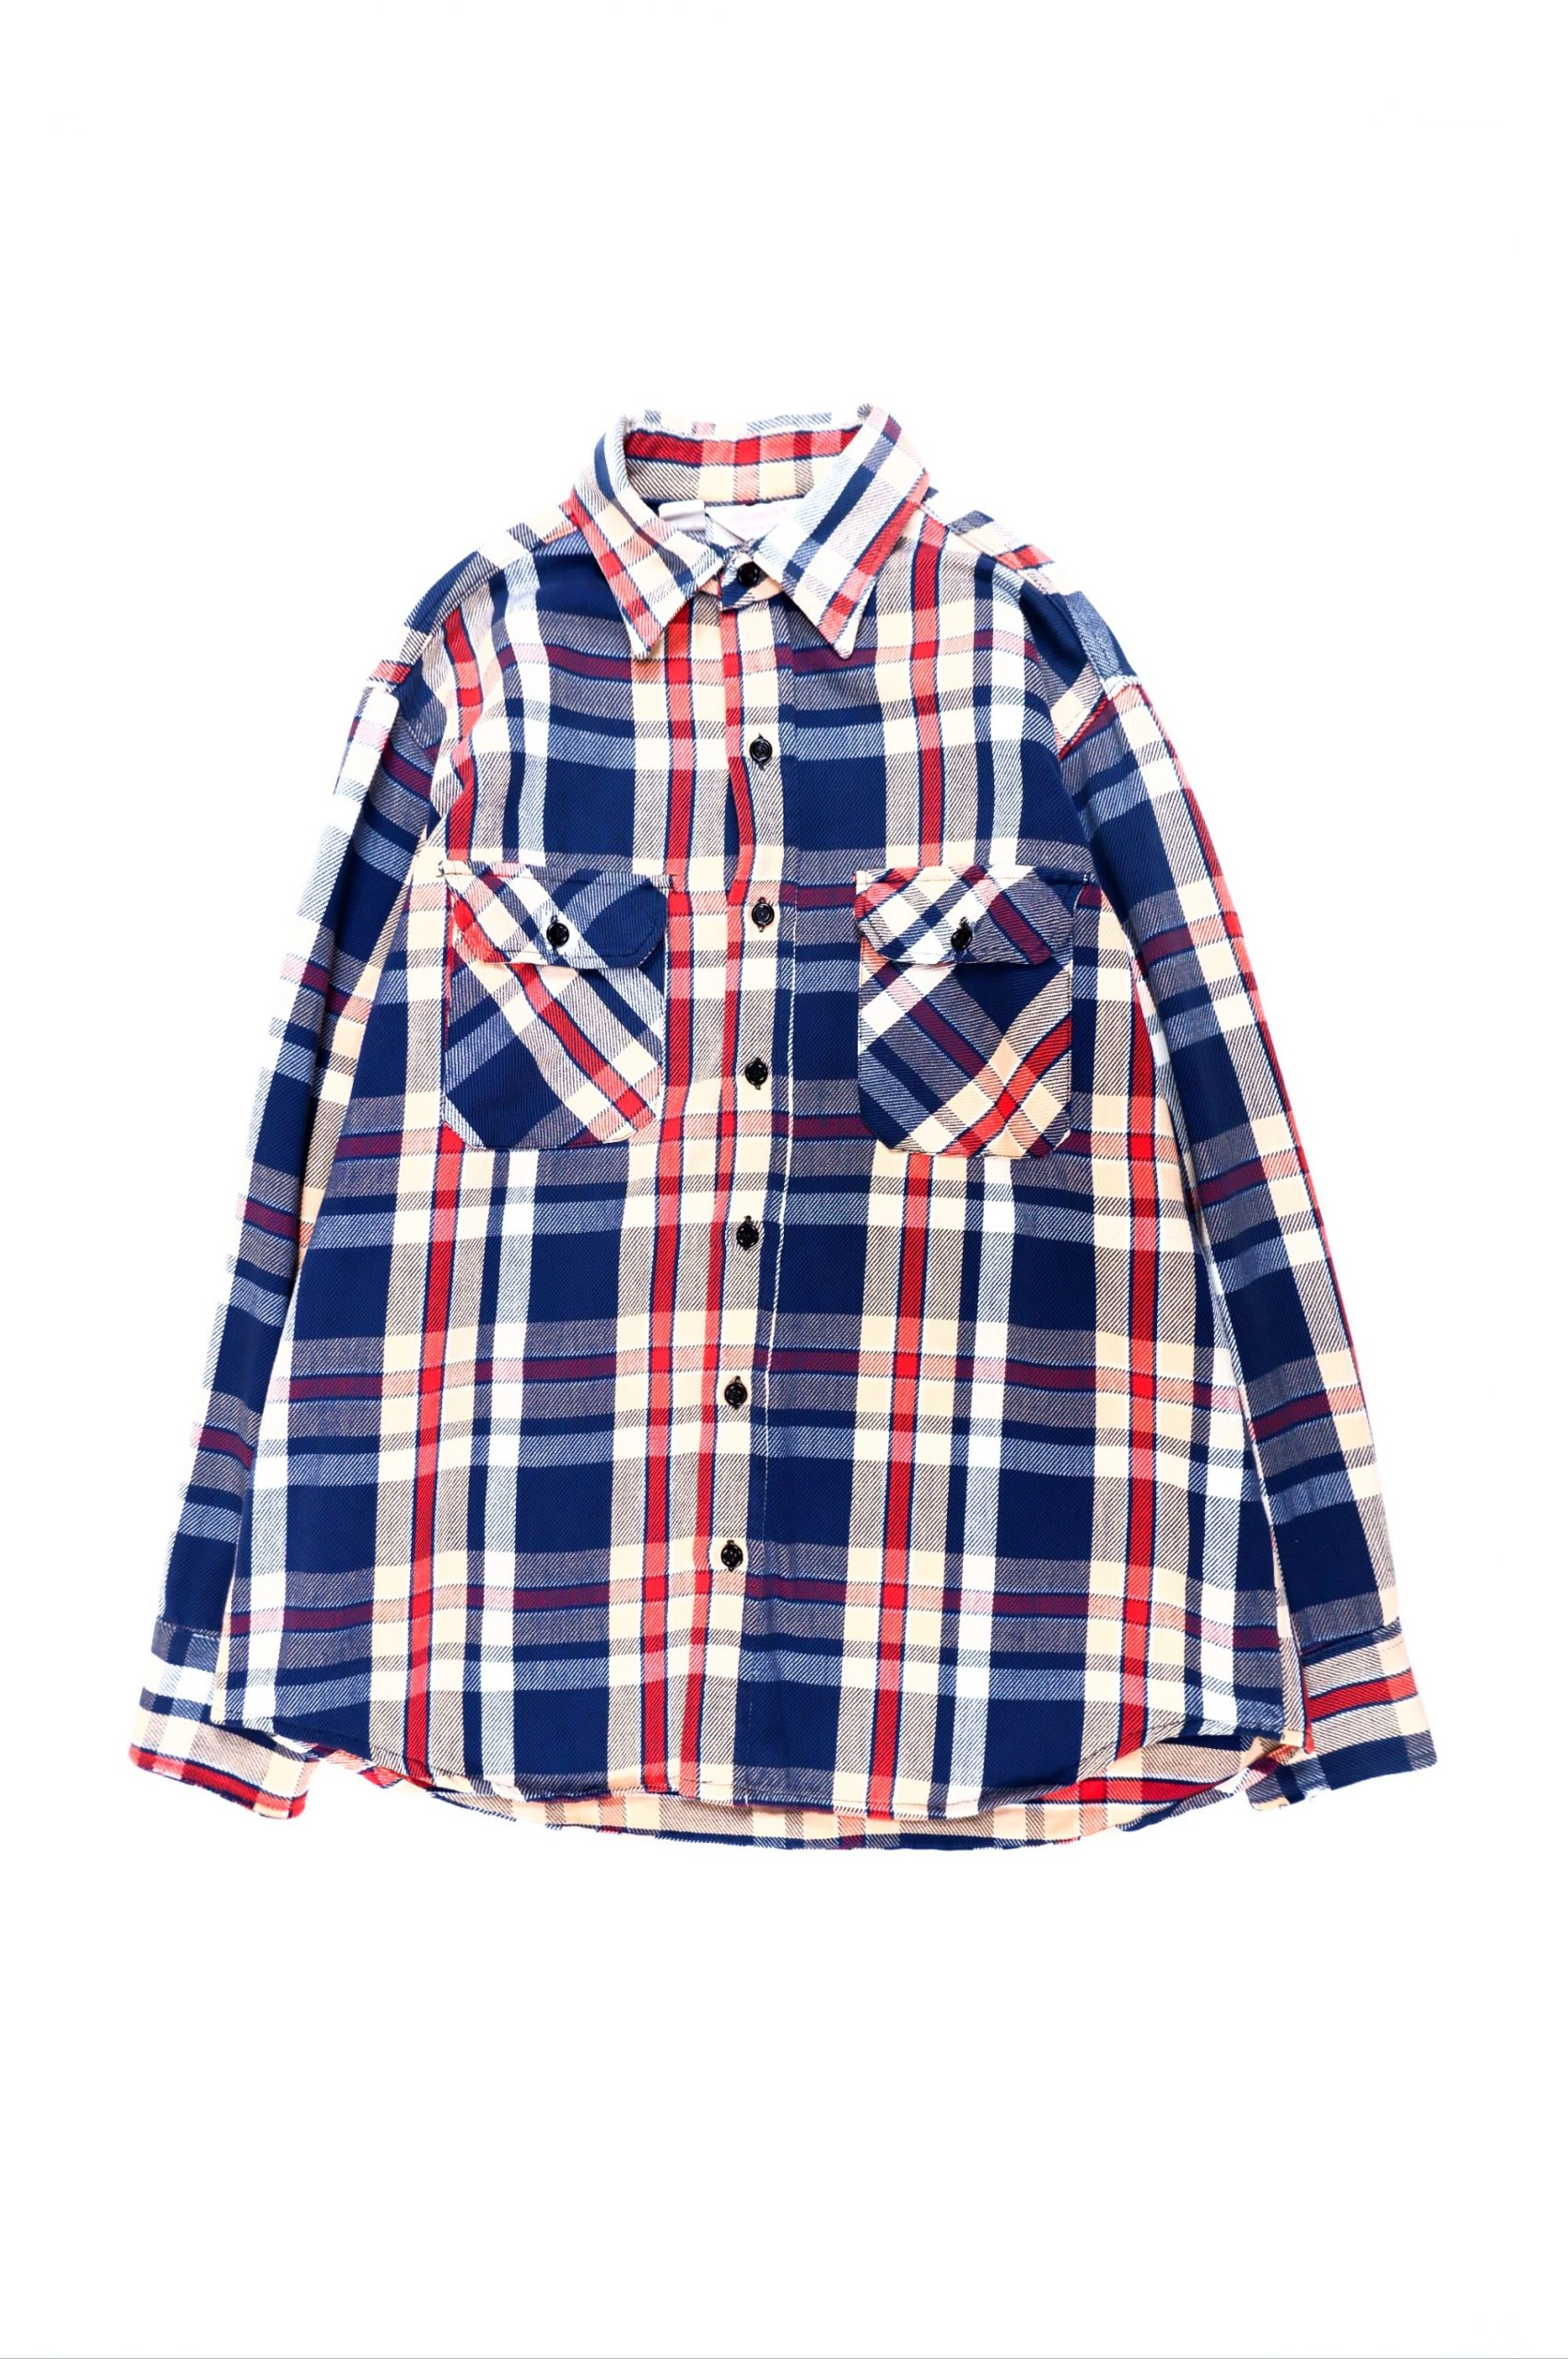 FROSTPROOF Check-Pattern Shirt_Made in USA-1